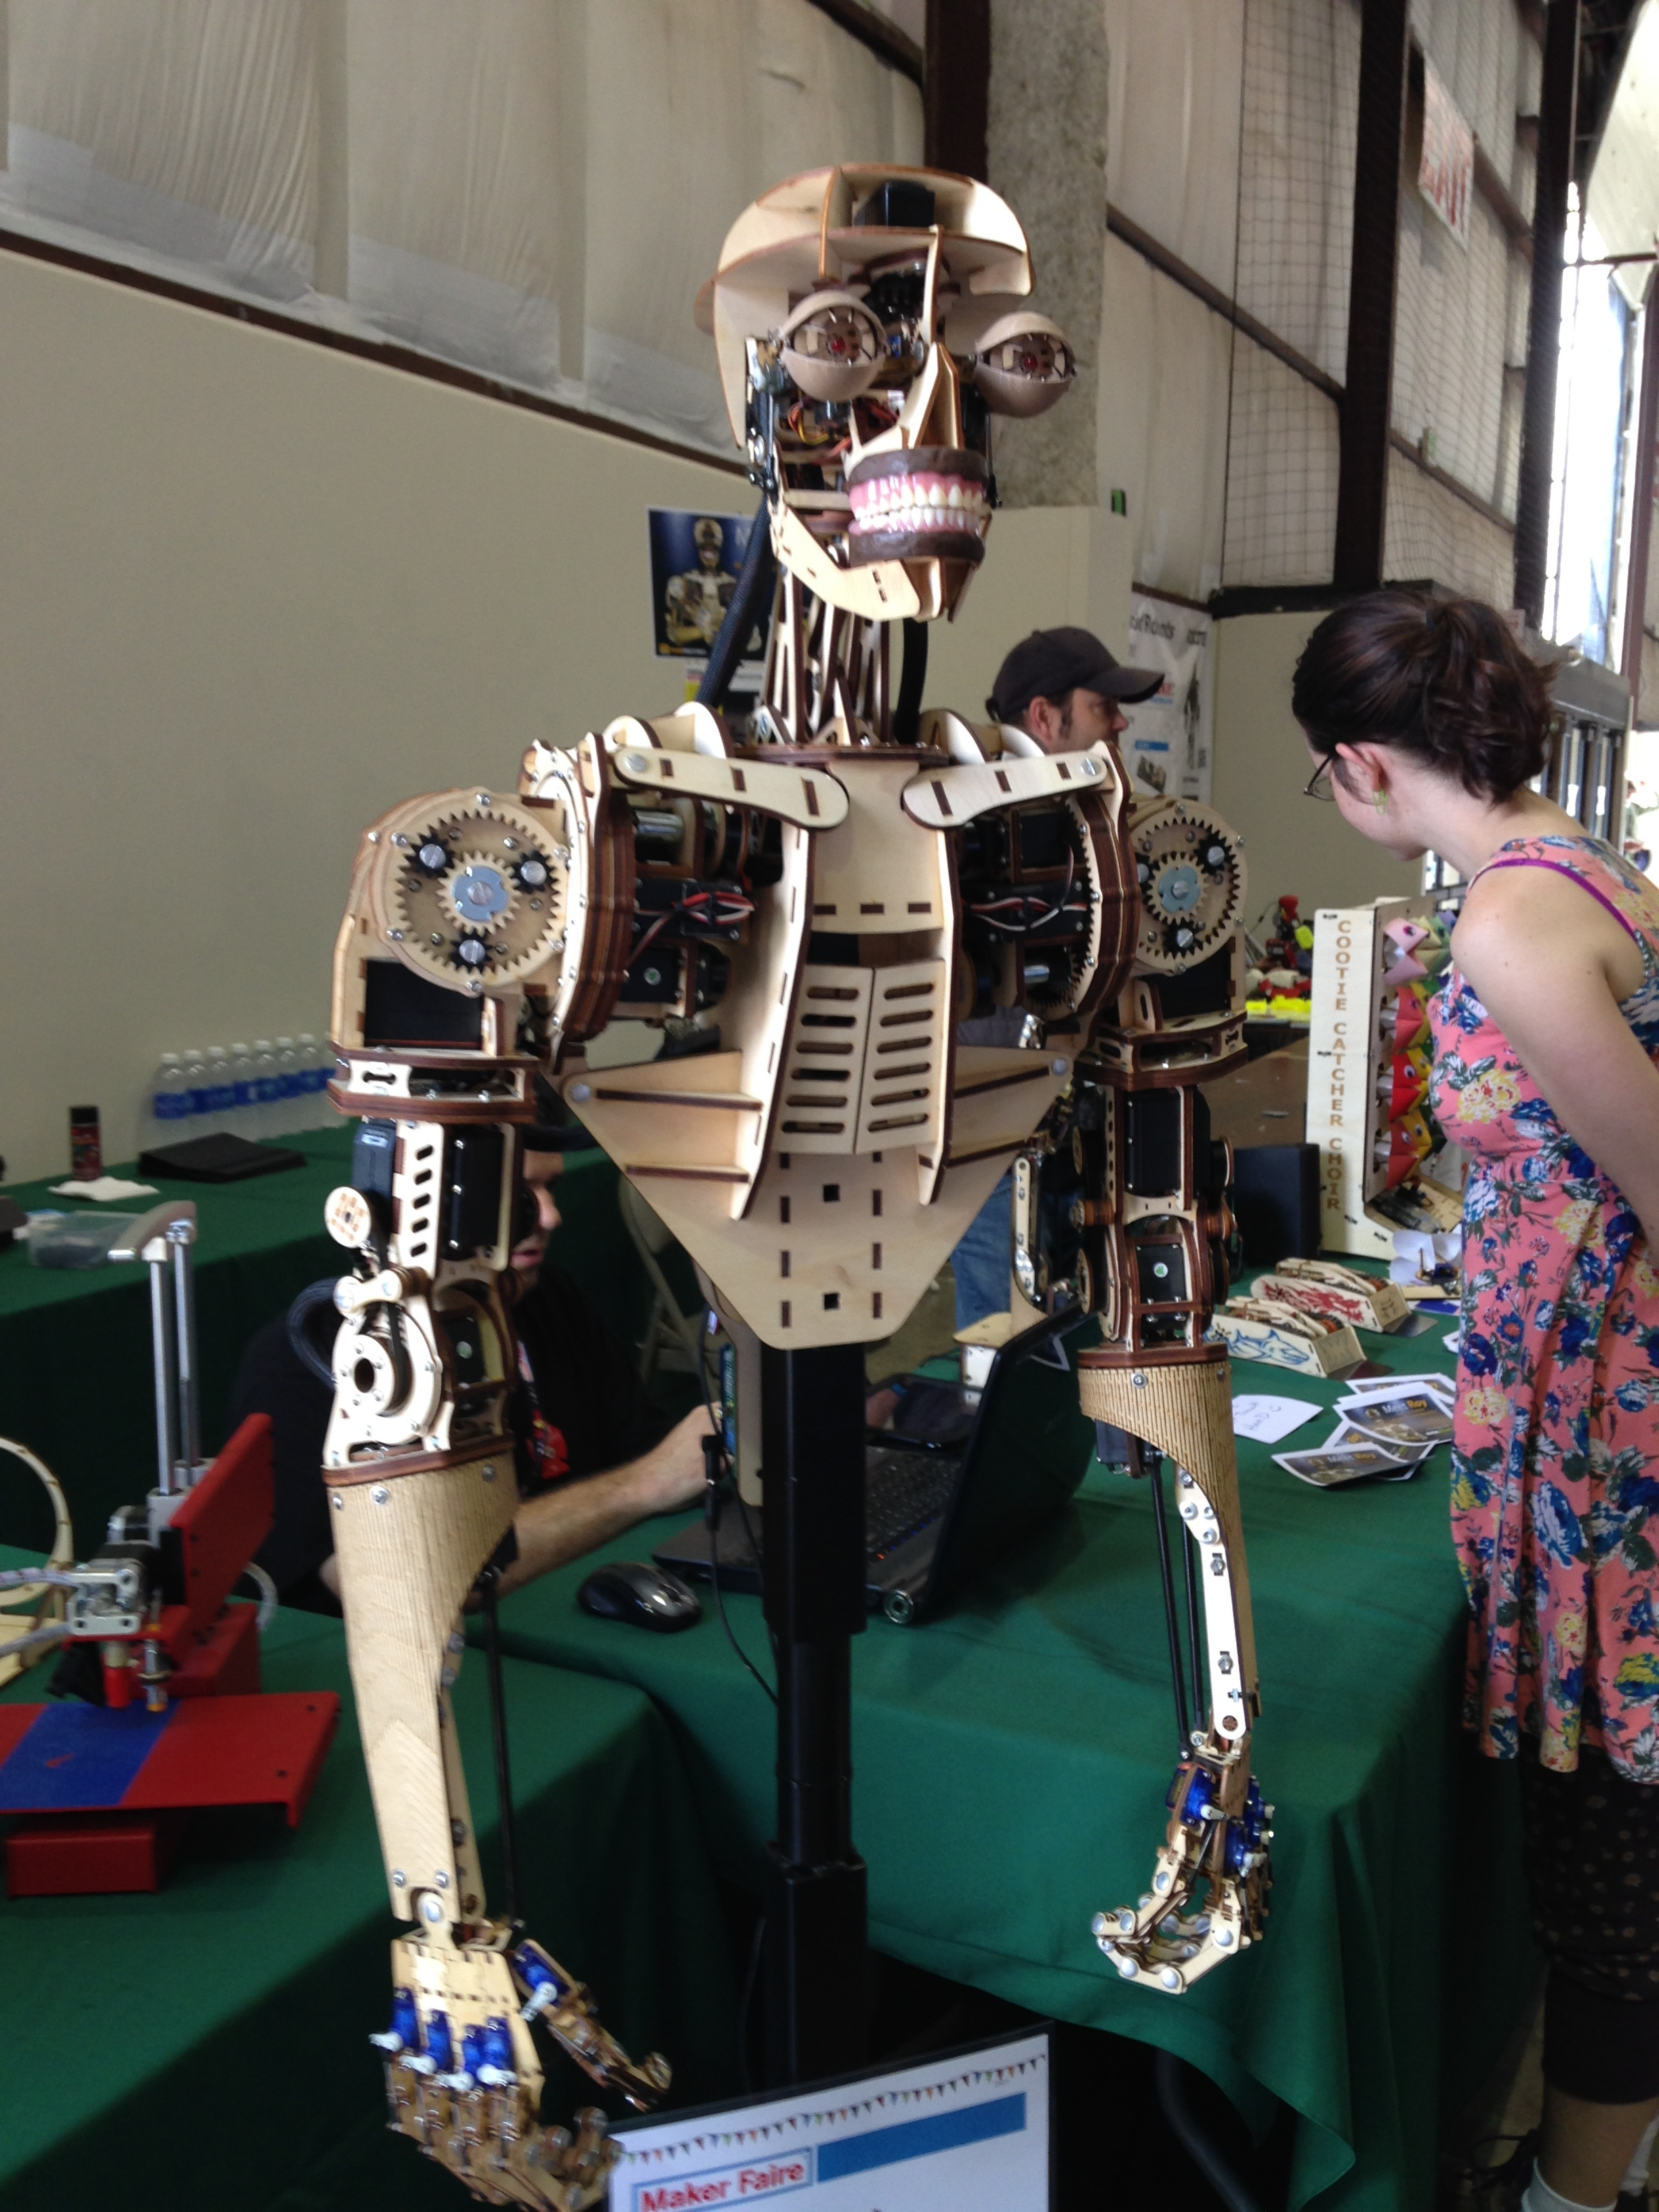 Meeting Roy the Robot, byBrian Roe!